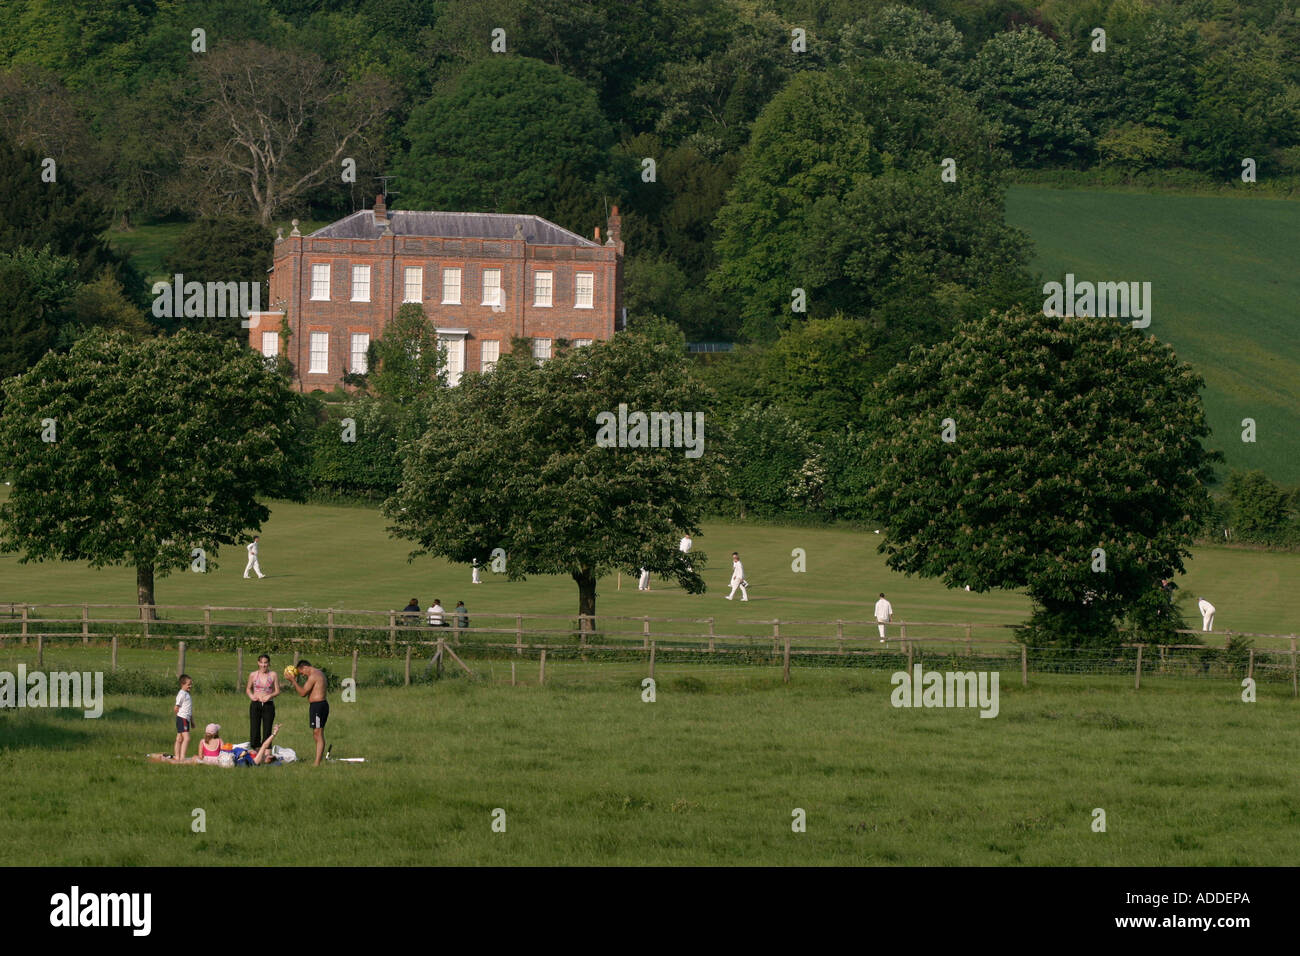 Family picnic in front of the Hamblen village playing fields - Stock Image